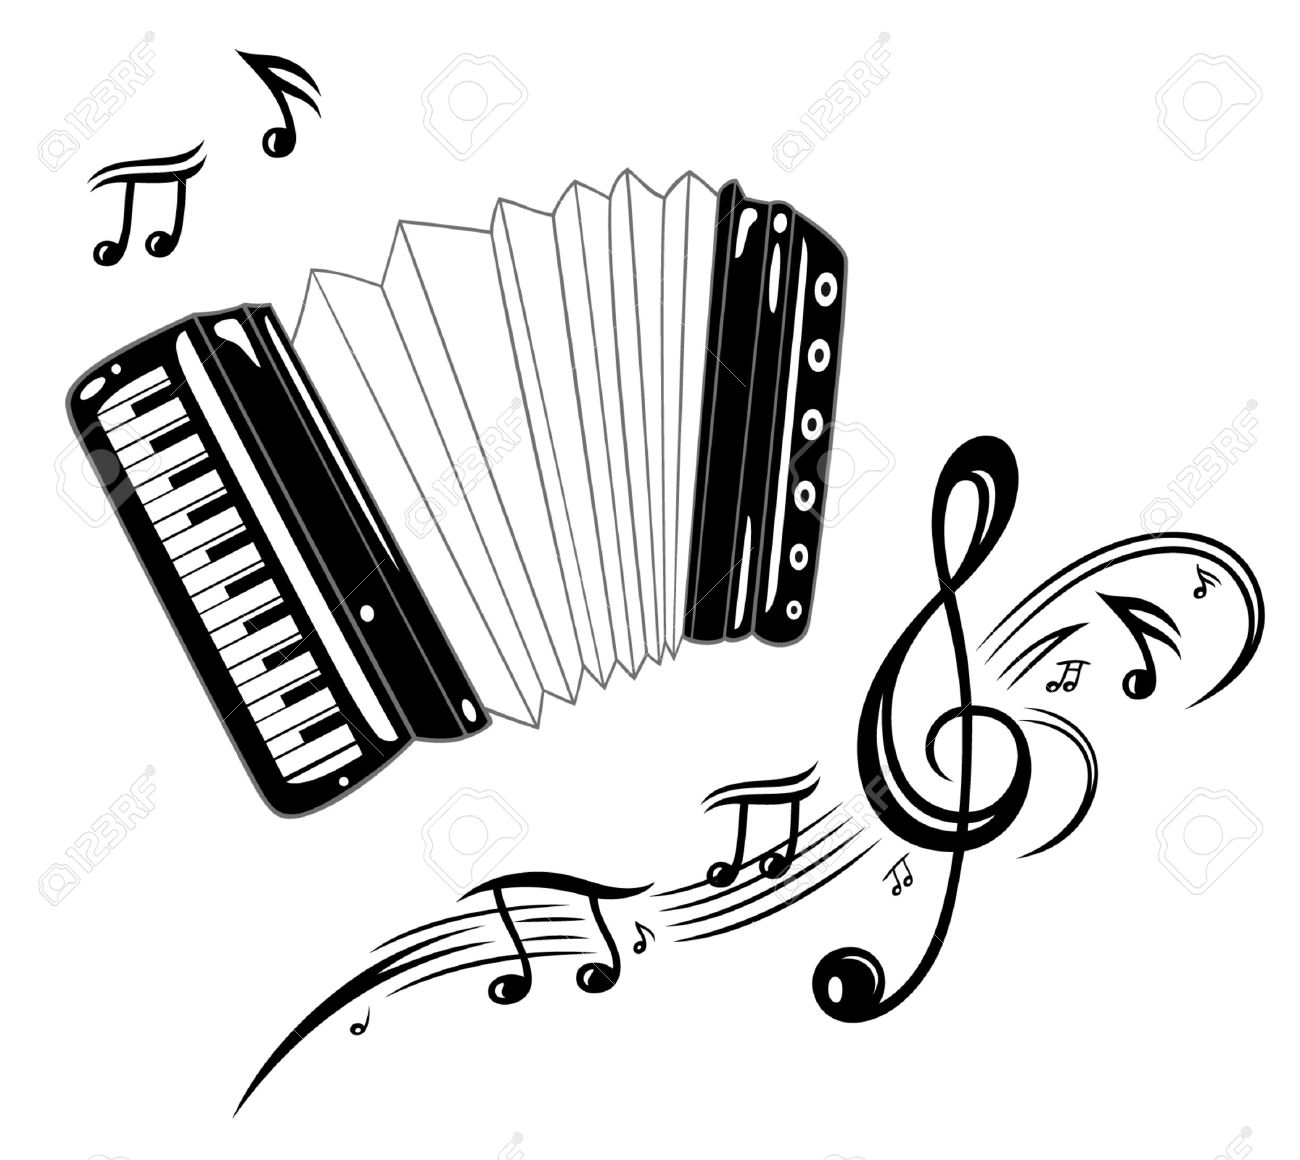 Accordion, musical instrument with music notes Standard-Bild - 29823422